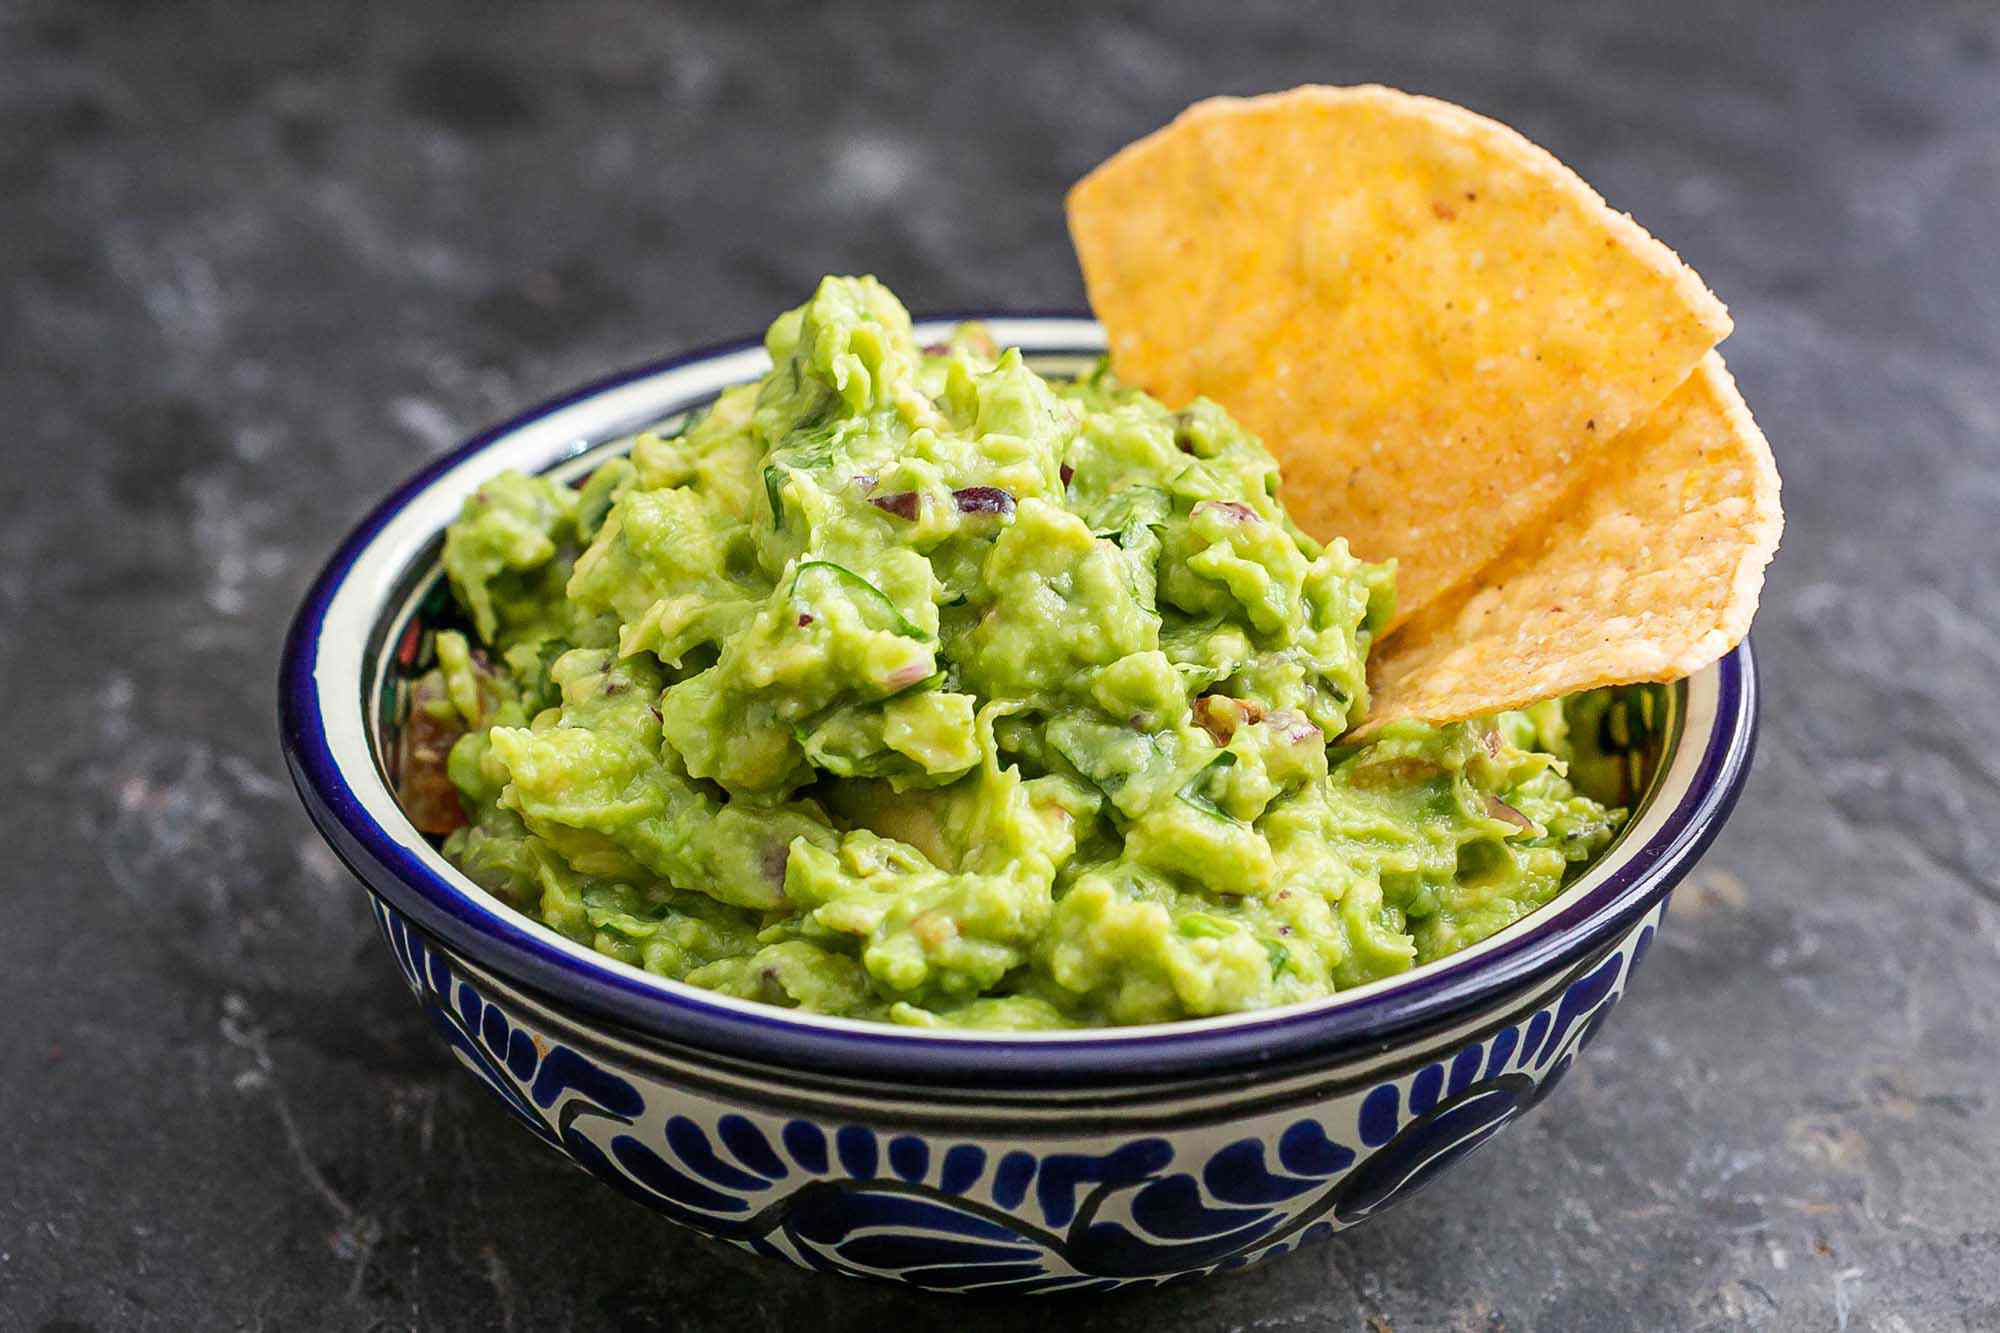 How To Make Guacamole With Video